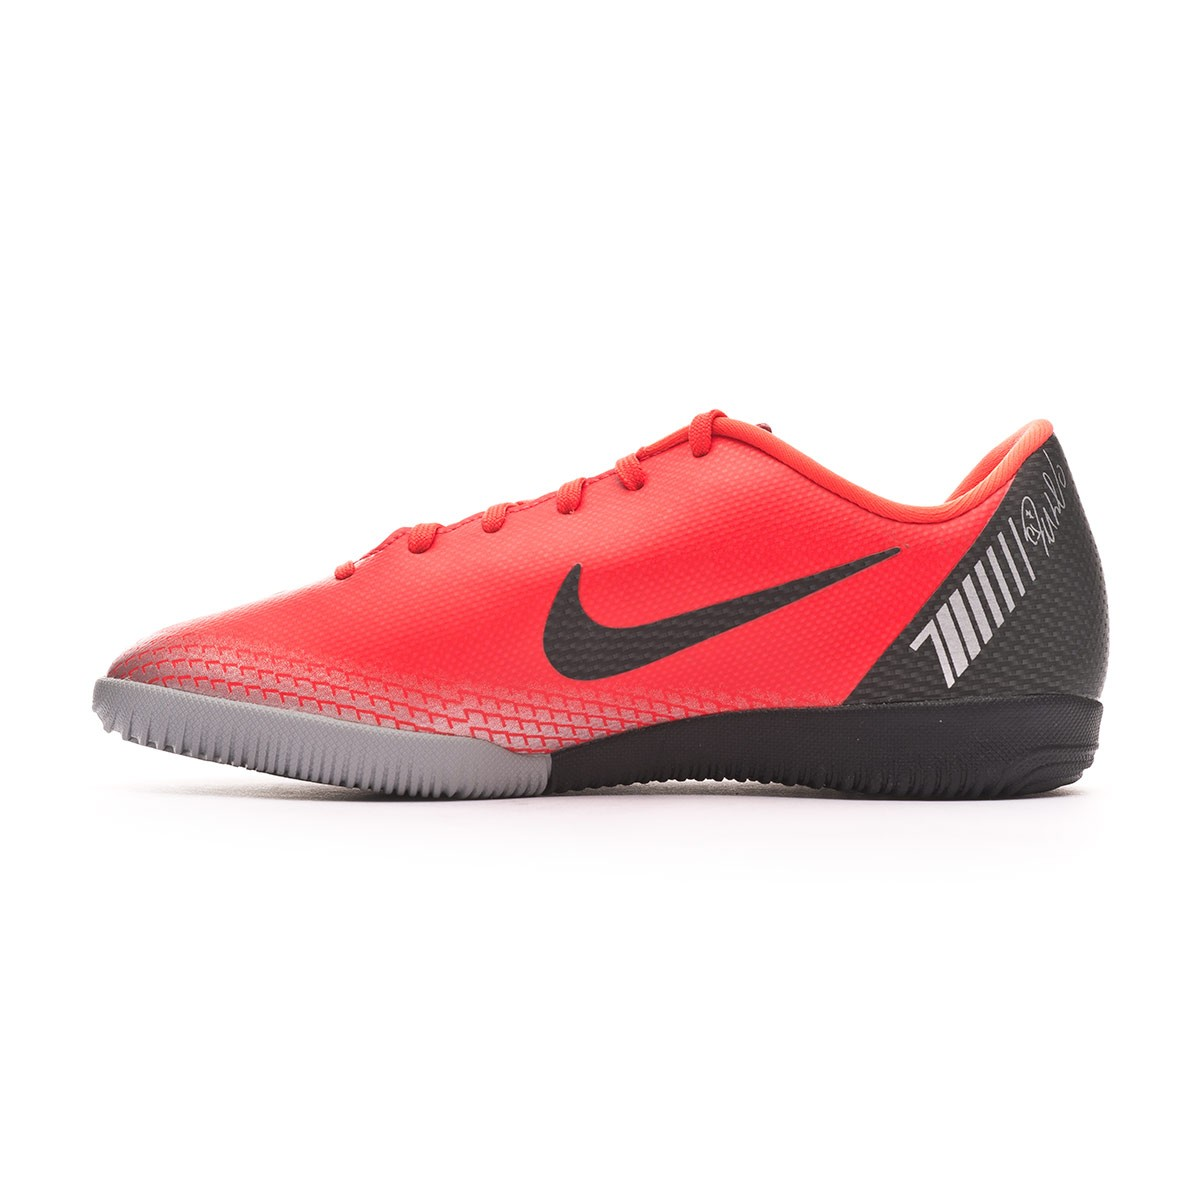 ee11309bdcc Futsal Boot Nike Kids Mercurial VaporX XII Academy CR7 IC Bright crimson- Black-Chrome-Dark grey - Football store Fútbol Emotion